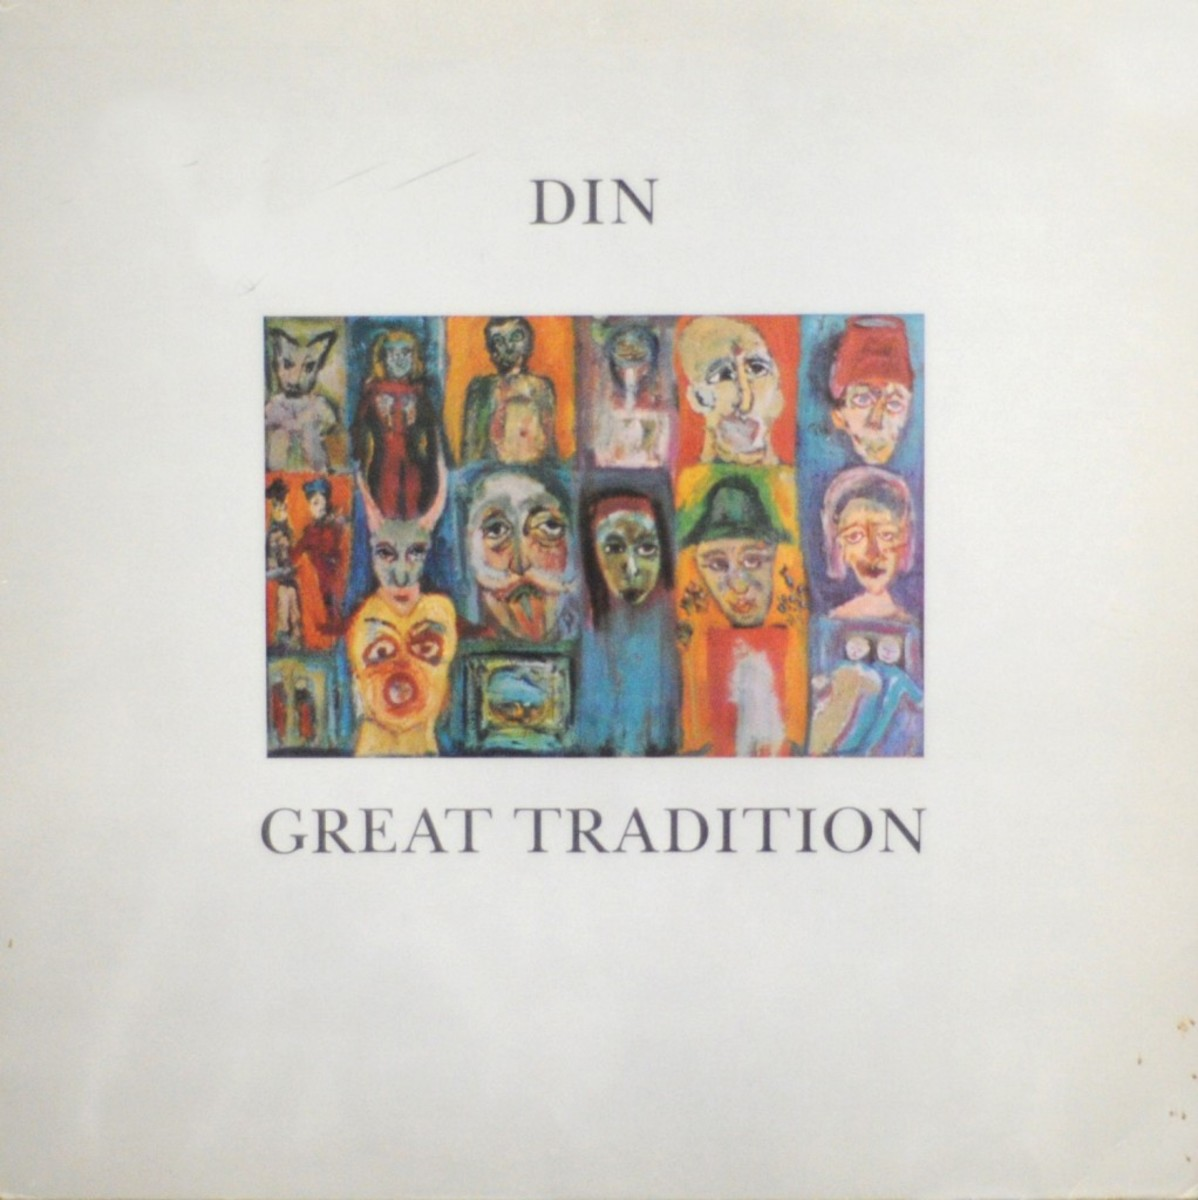 The Din Great Tradition album